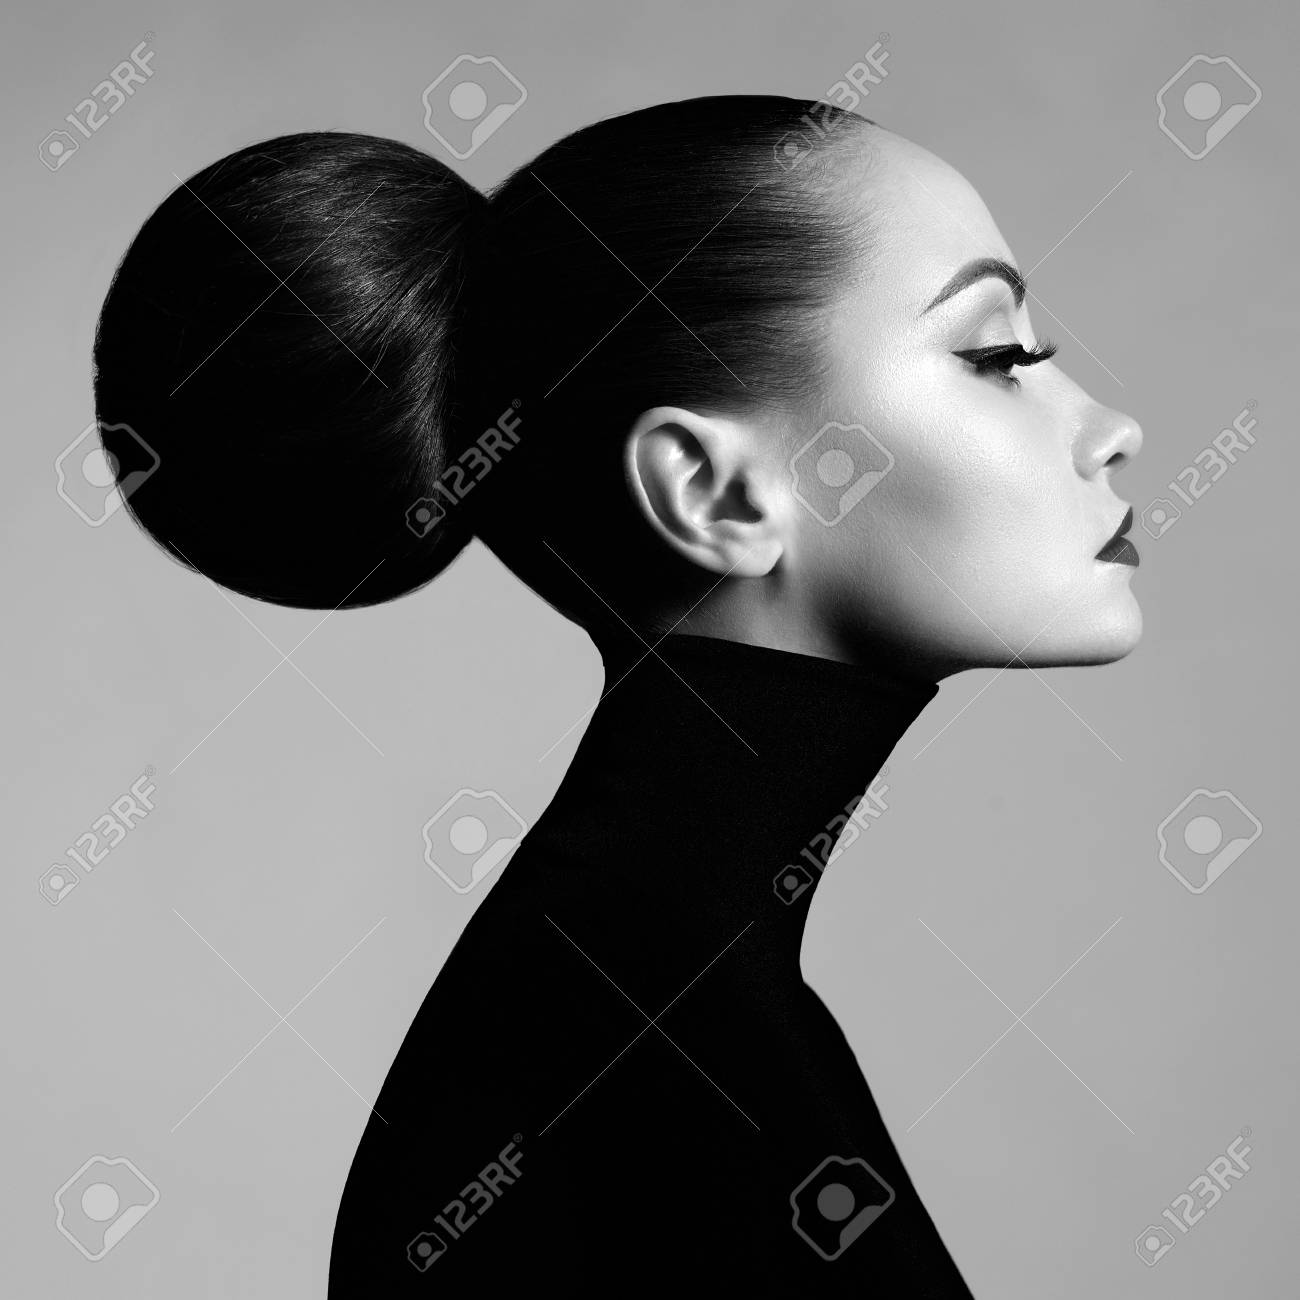 Black and white fashion art studio portrait of beautiful elegant woman in black turtleneck hair